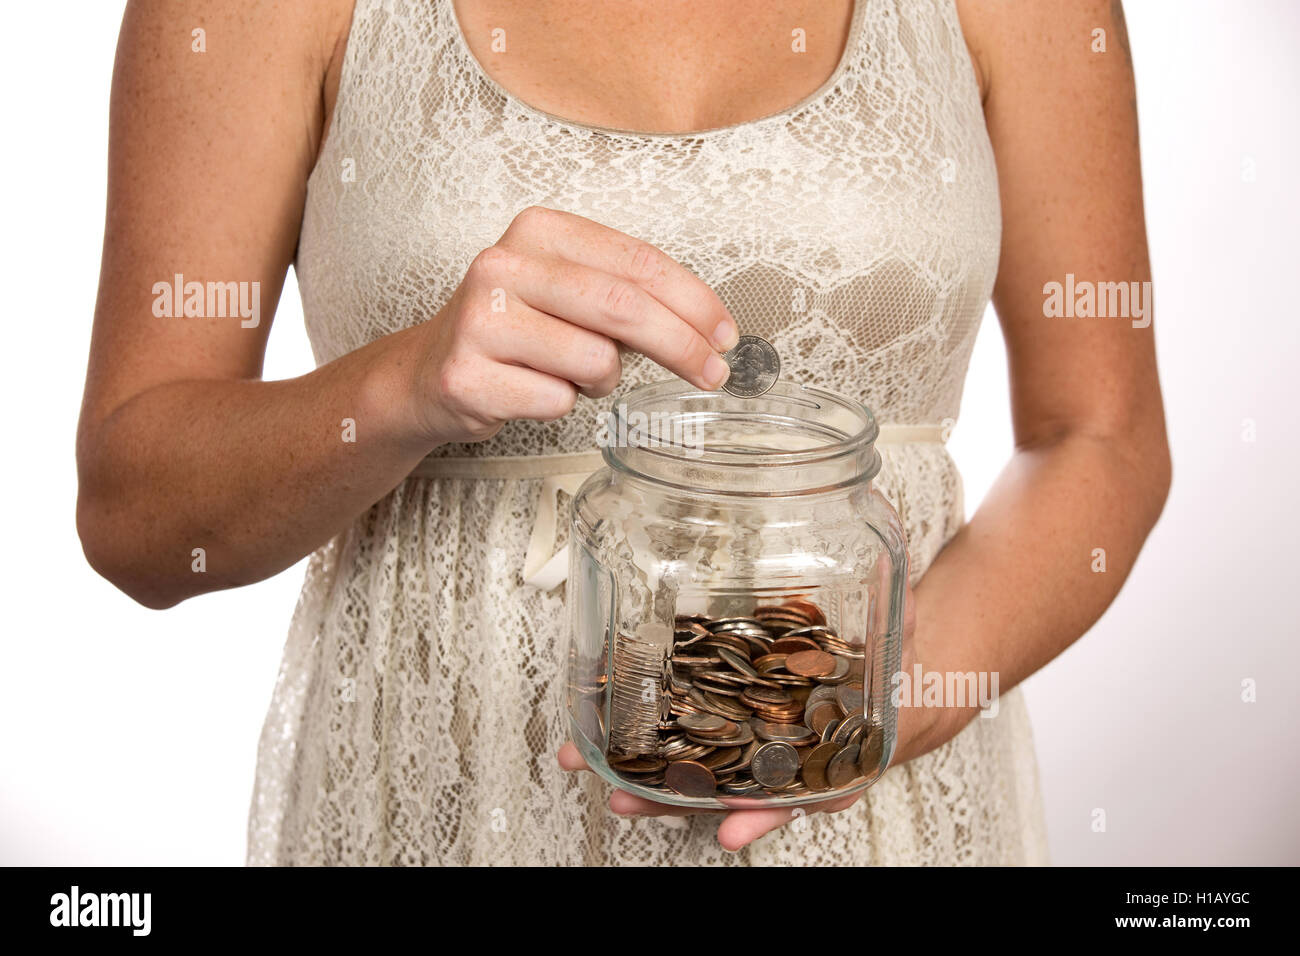 Woman puts a quarter in a clear glass savings jar for use as a financial and banking concept. - Stock Image